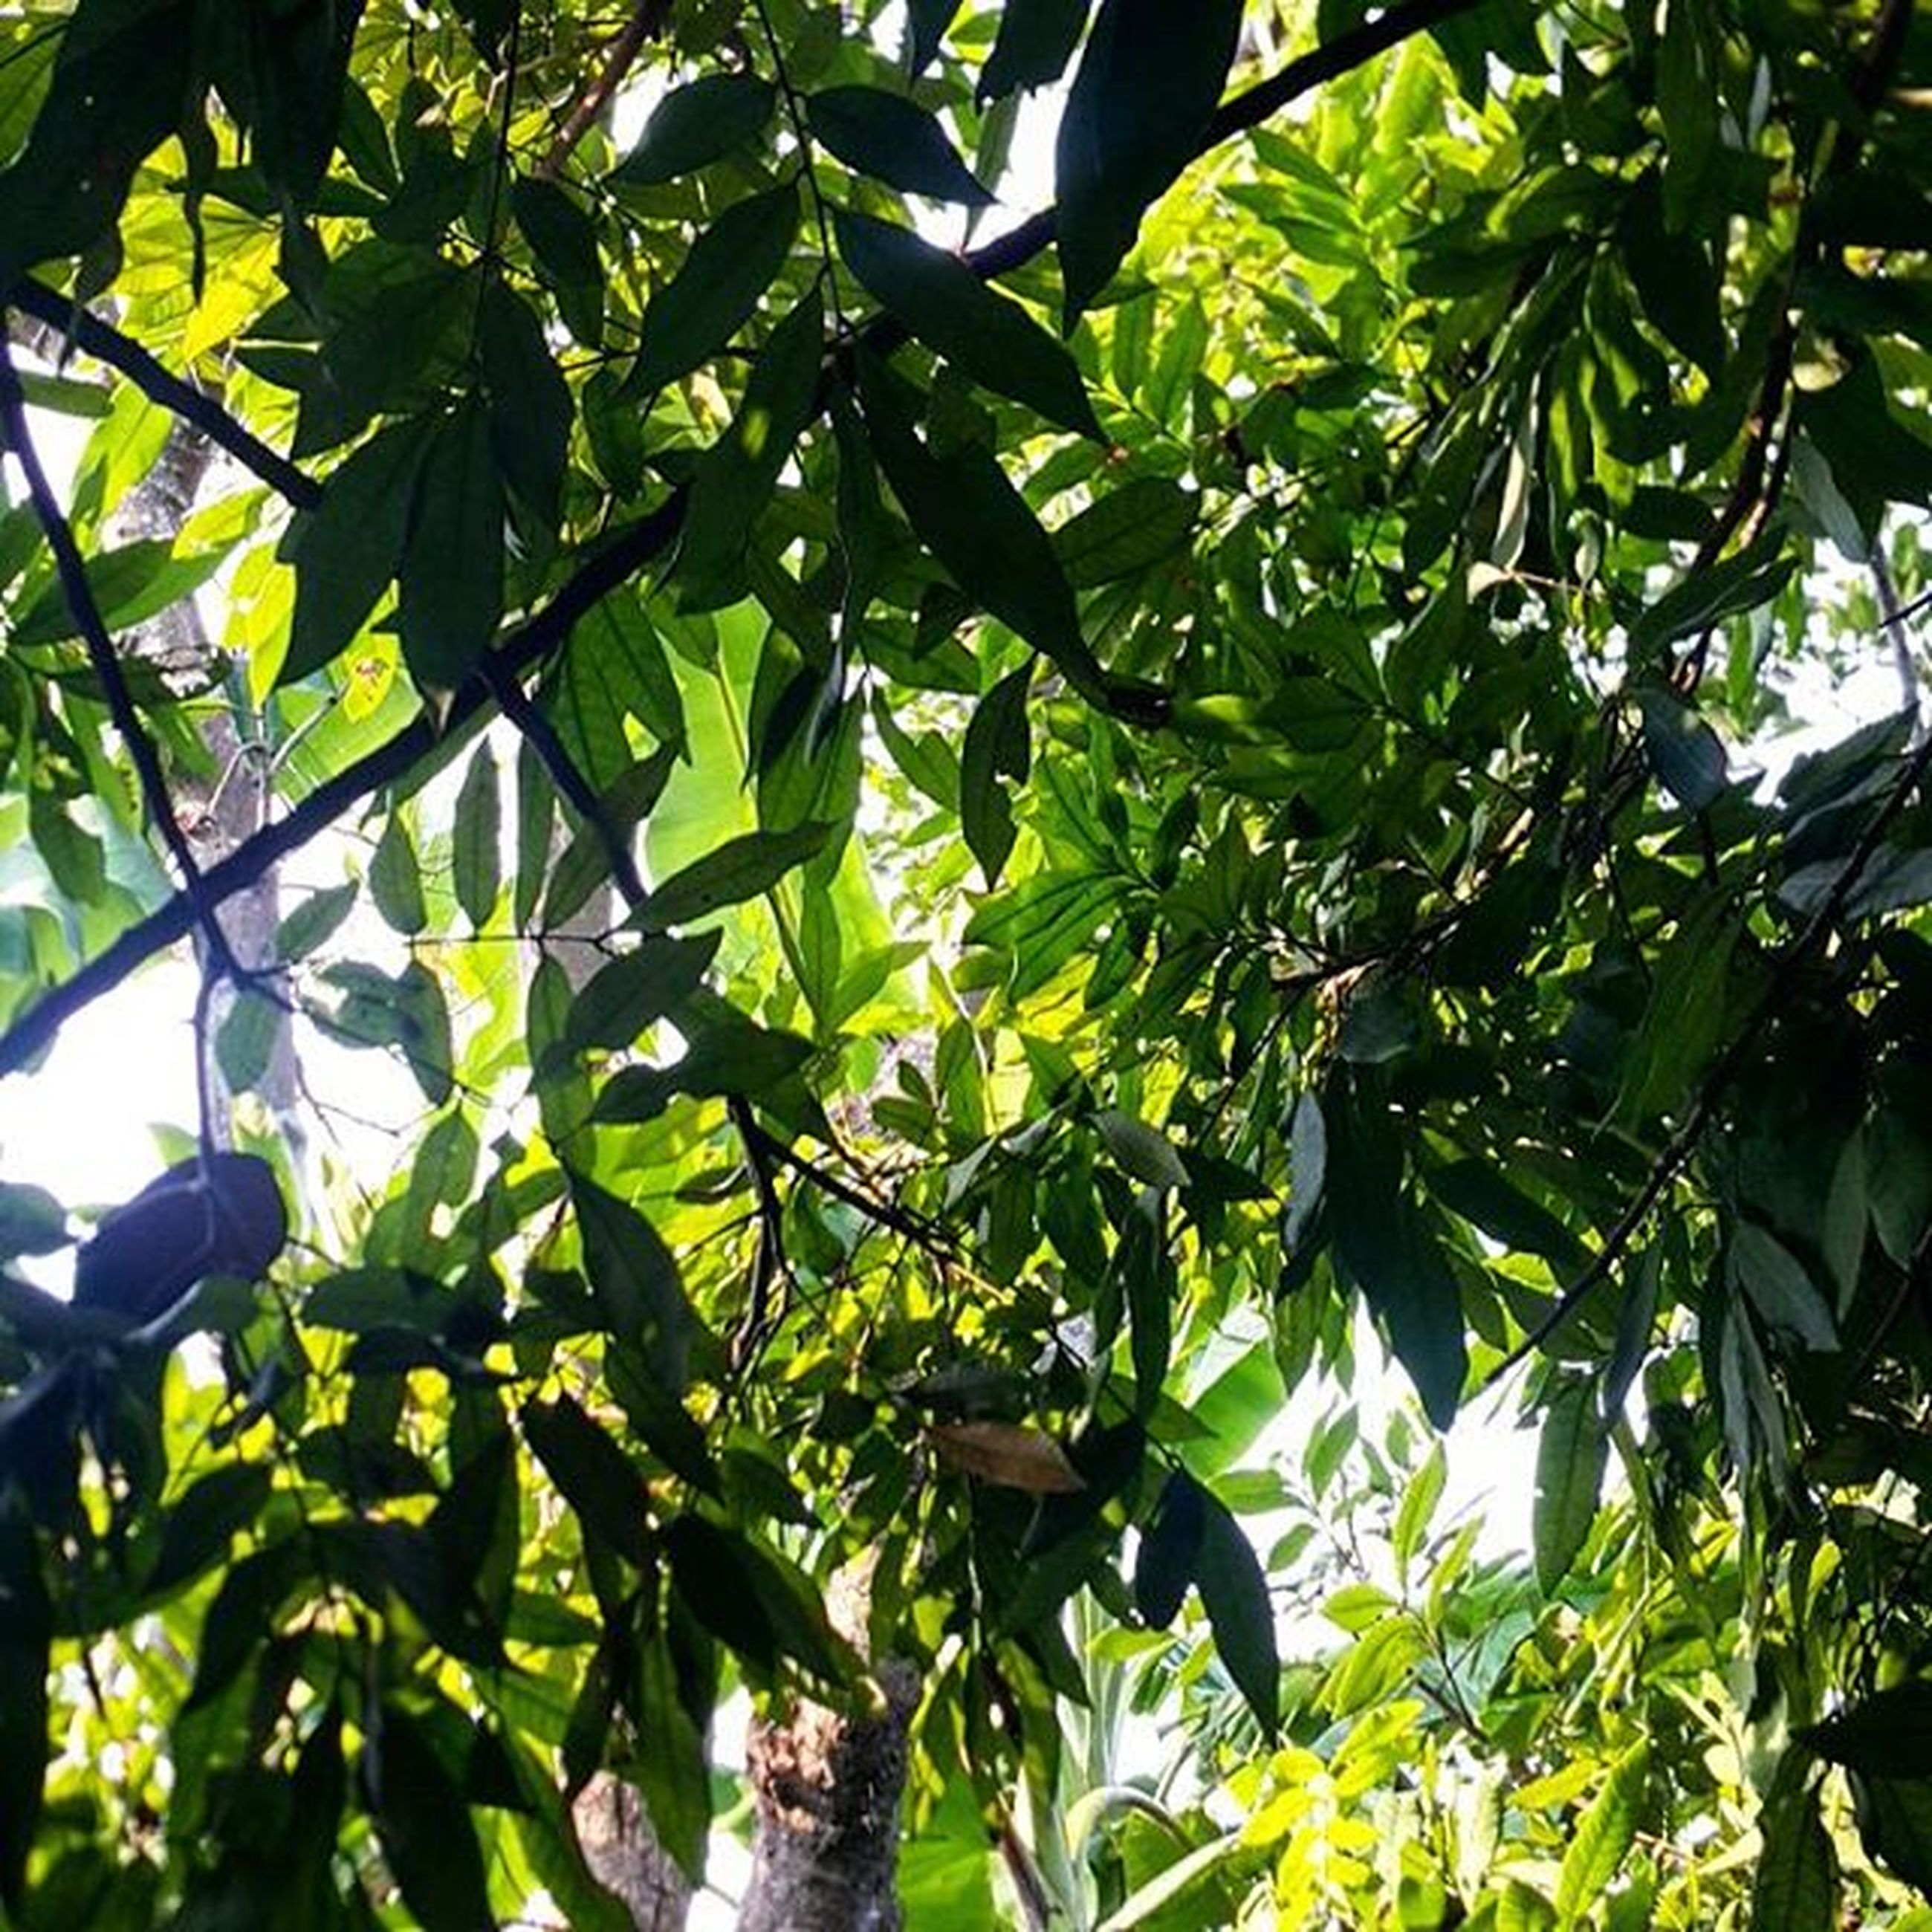 leaf, tree, growth, low angle view, green color, branch, nature, full frame, lush foliage, beauty in nature, tranquility, backgrounds, sunlight, day, outdoors, green, no people, plant, close-up, leaves